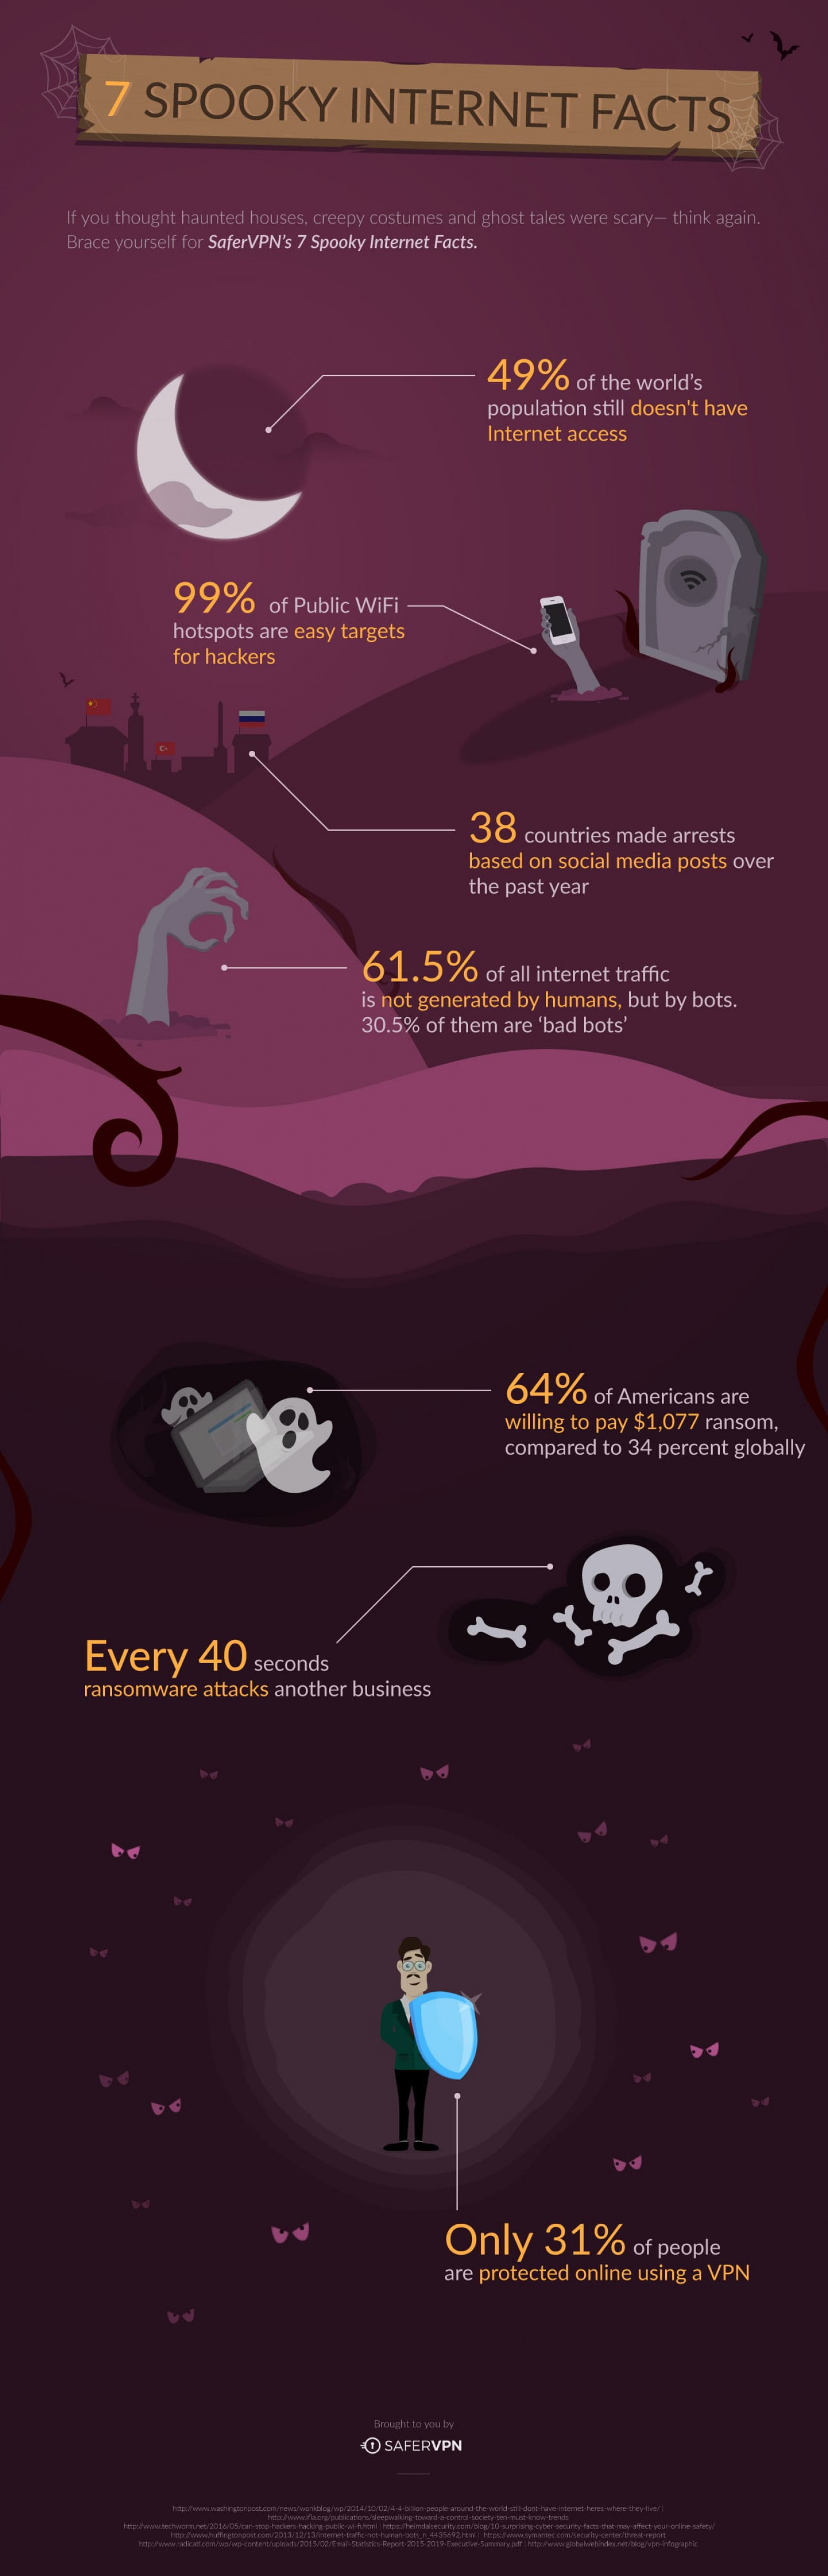 7 Spooky Internet Facts  Infographic